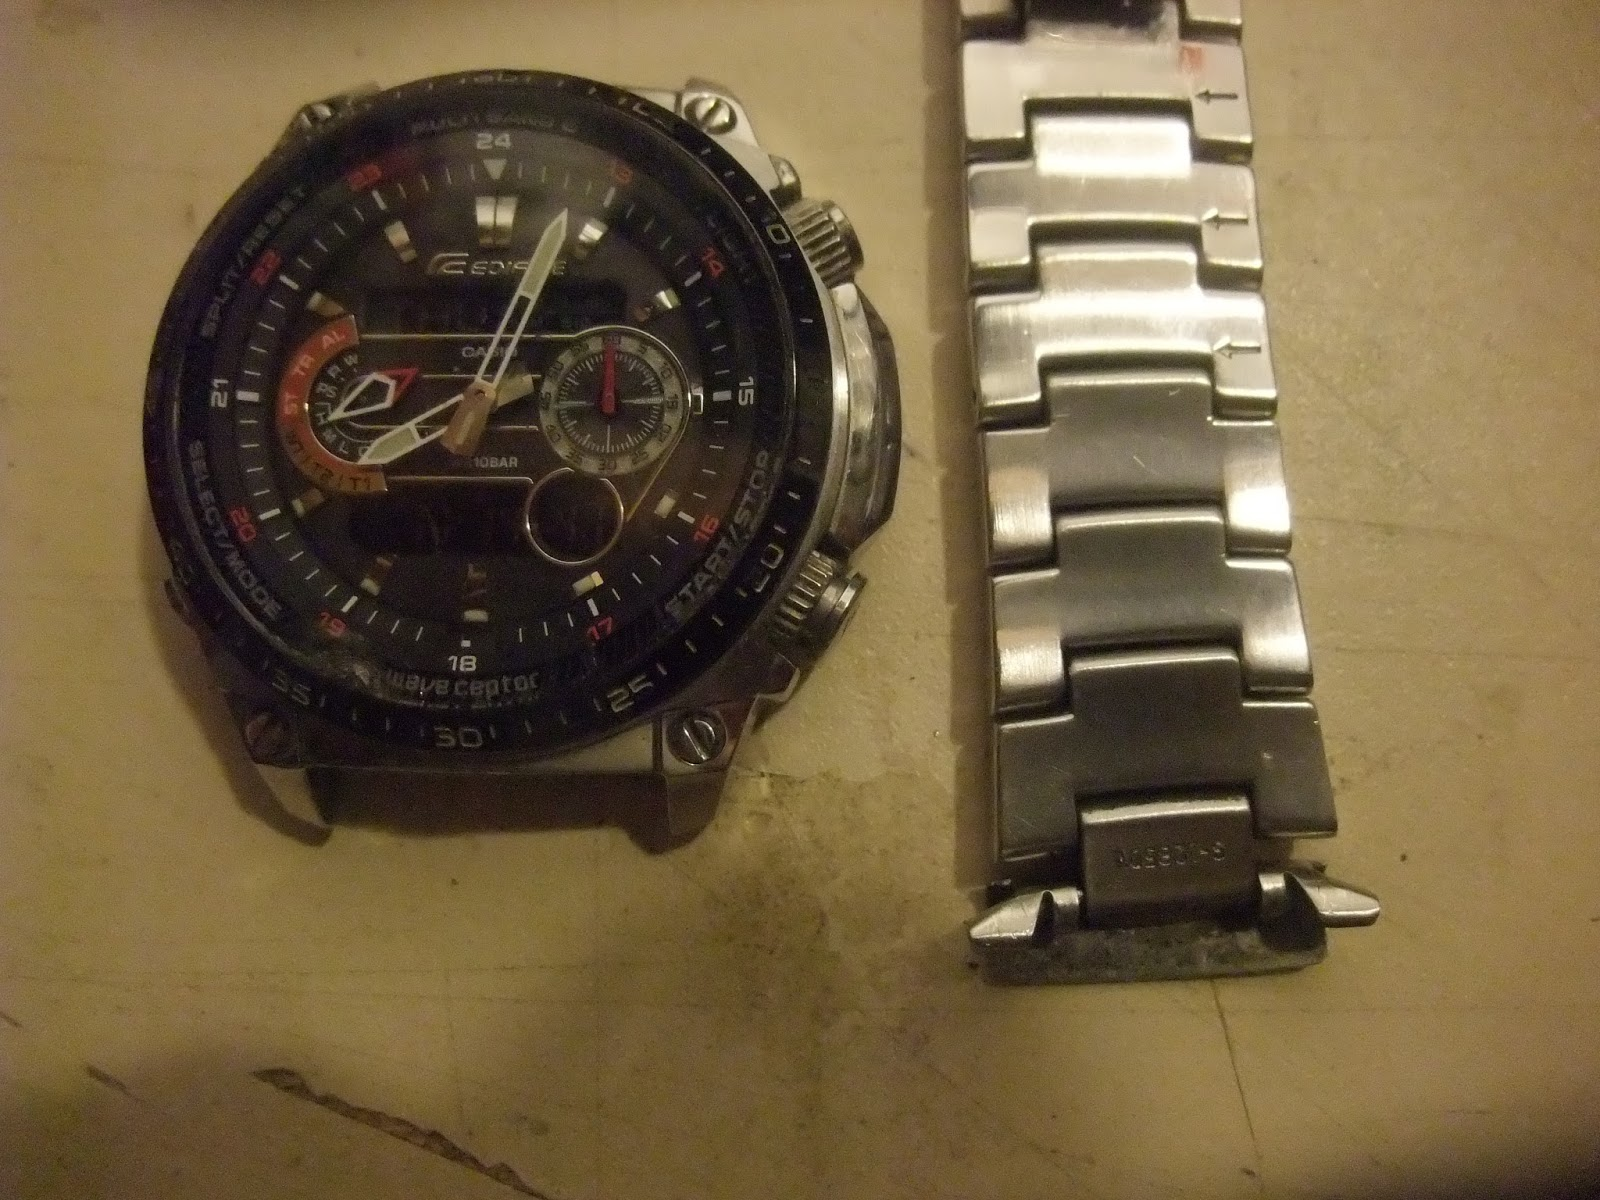 montre casio ne sonne plus  WcEDS